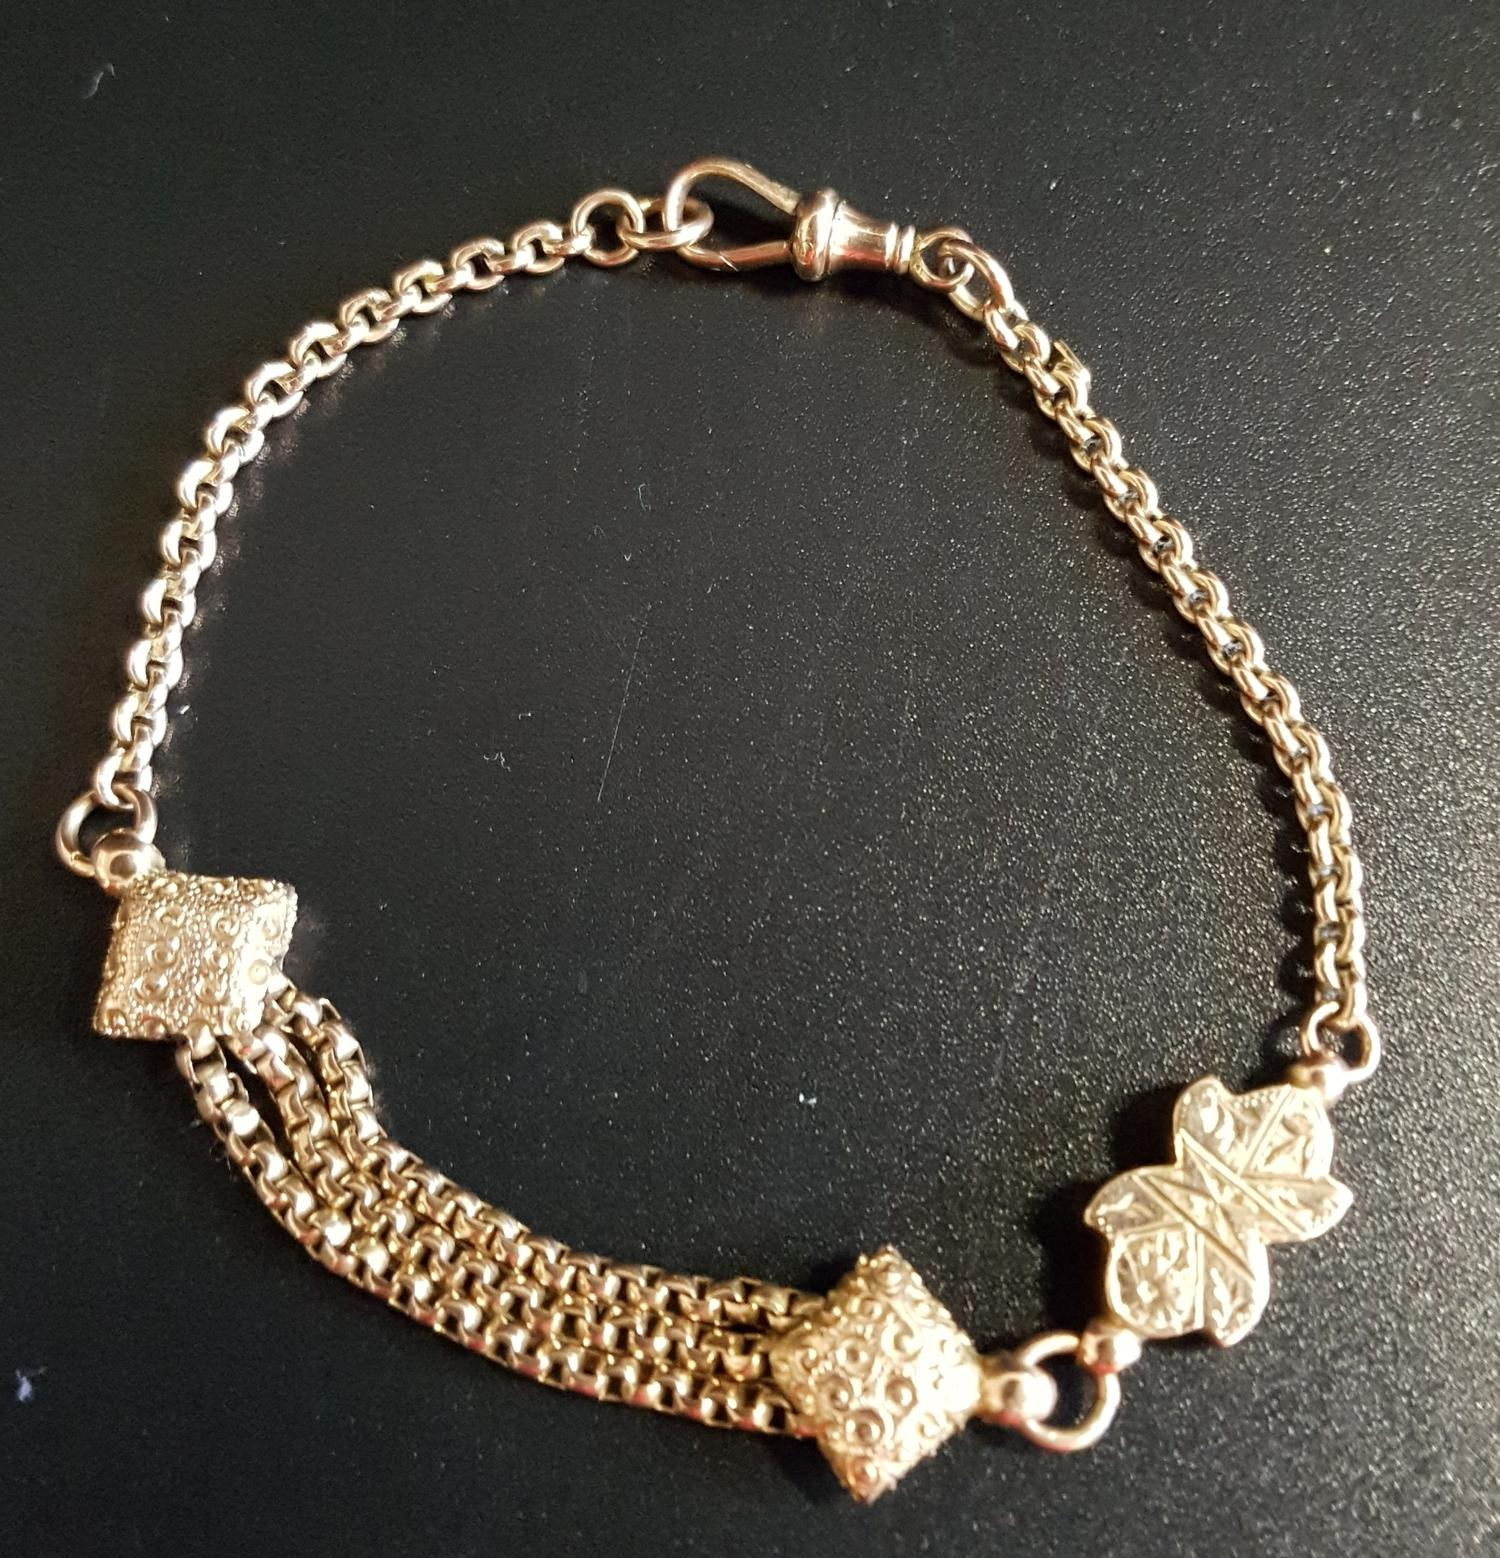 Lot 40 - UNUSUAL NINE CARAT GOLD ALBERTINA BRACELET with central shaped links and triple chain section,